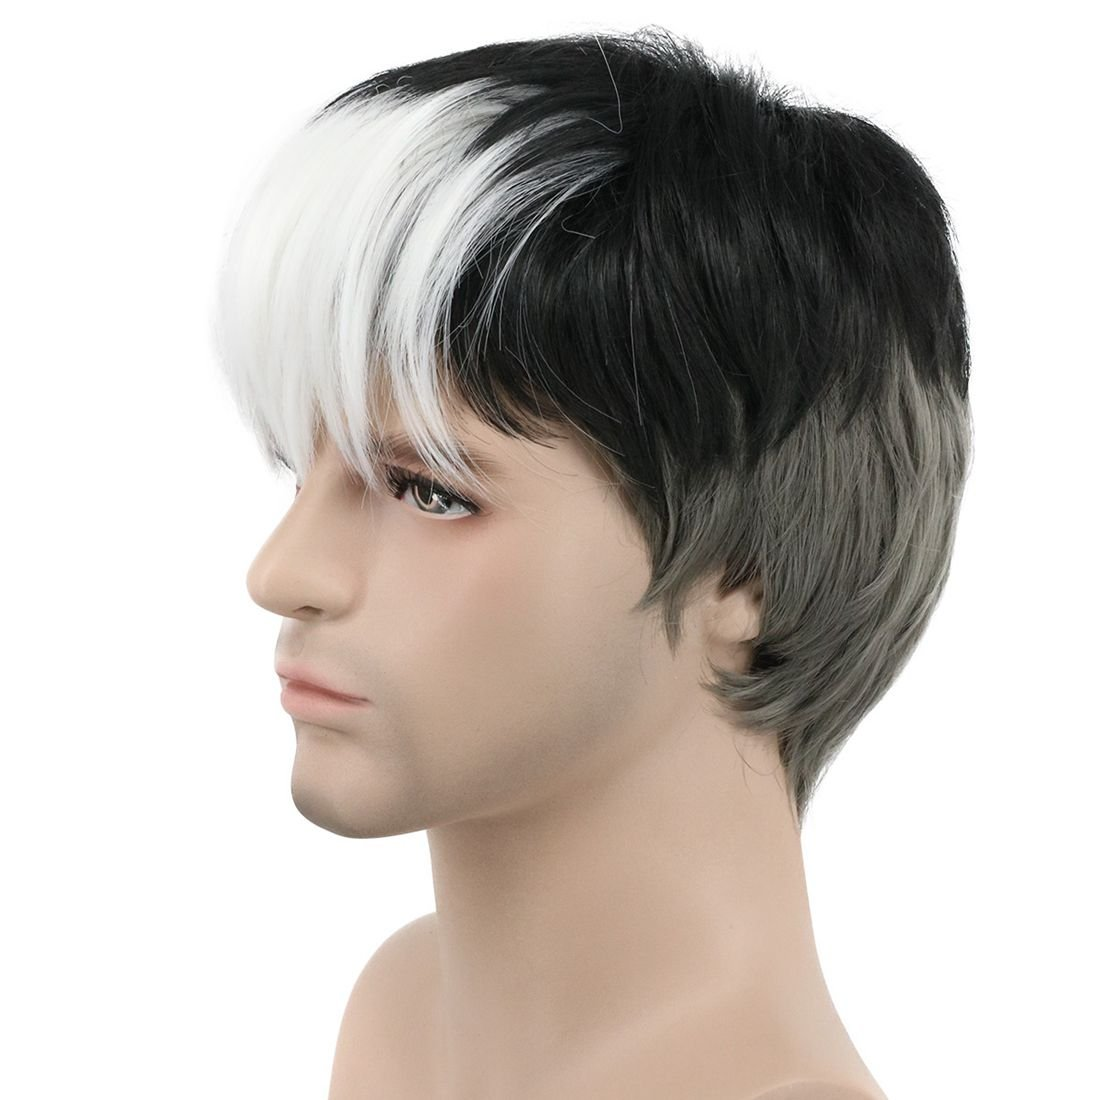 Karlery Short Straight White Gray Gradient Black Wig Halloween Costume Wig Anime Cosplay Wig